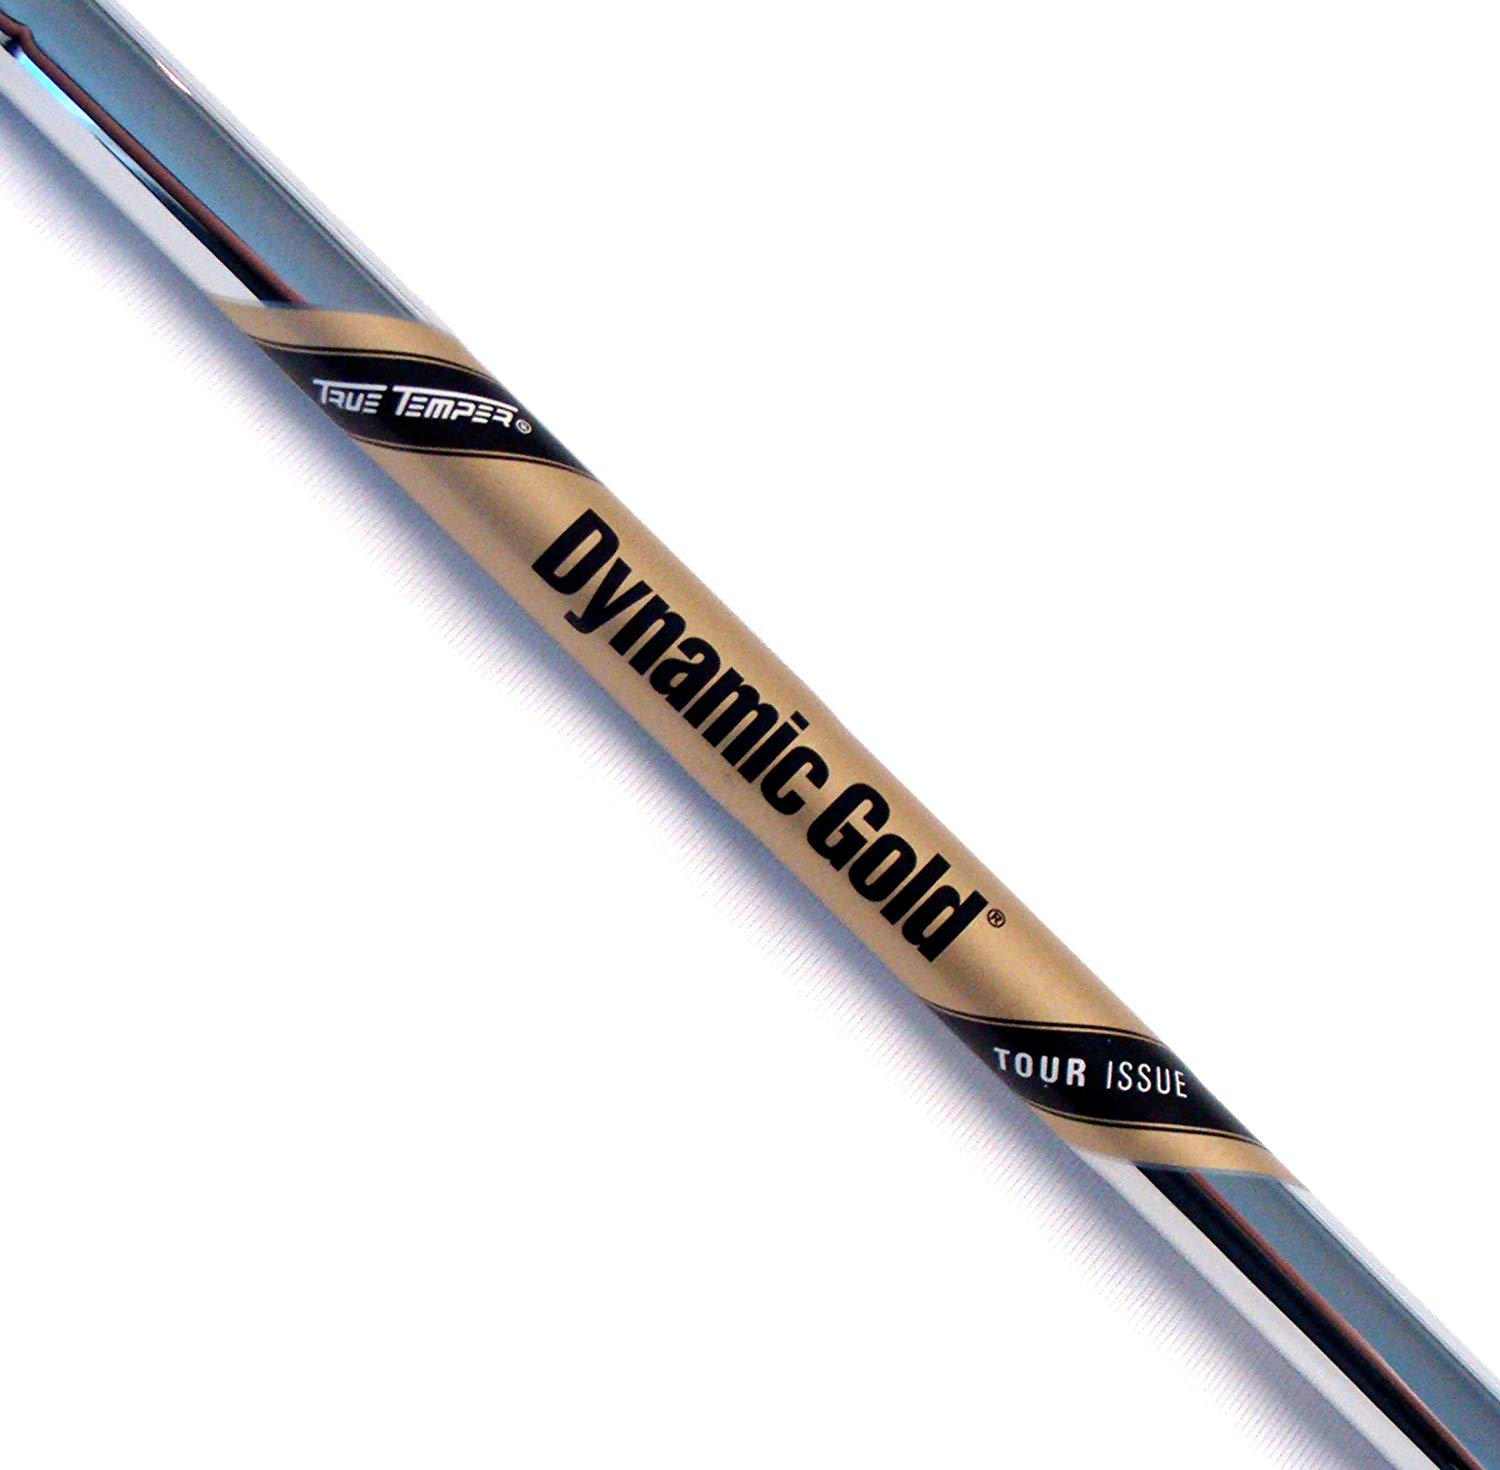 True Temper Tour Issue Dynamic Gold S400 Shafts